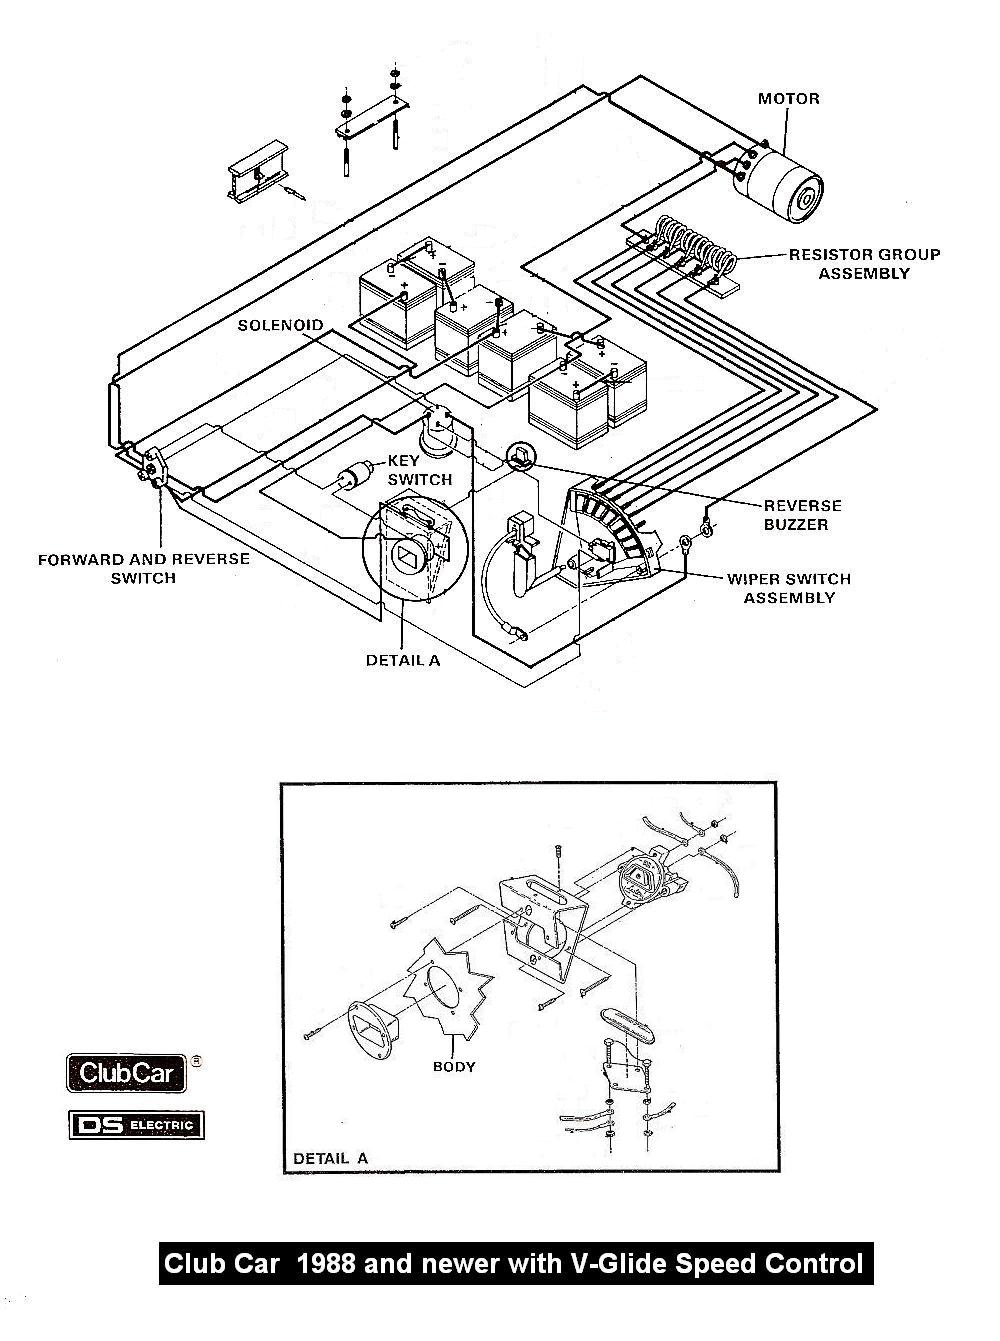 club car golf cart wiring diagram v glide schematics wiring diagram rh  sylviaexpress com 1992 Ezgo Gas Golf Cart Wiring Diagram 36 Volt Solenoid  Wiring ...